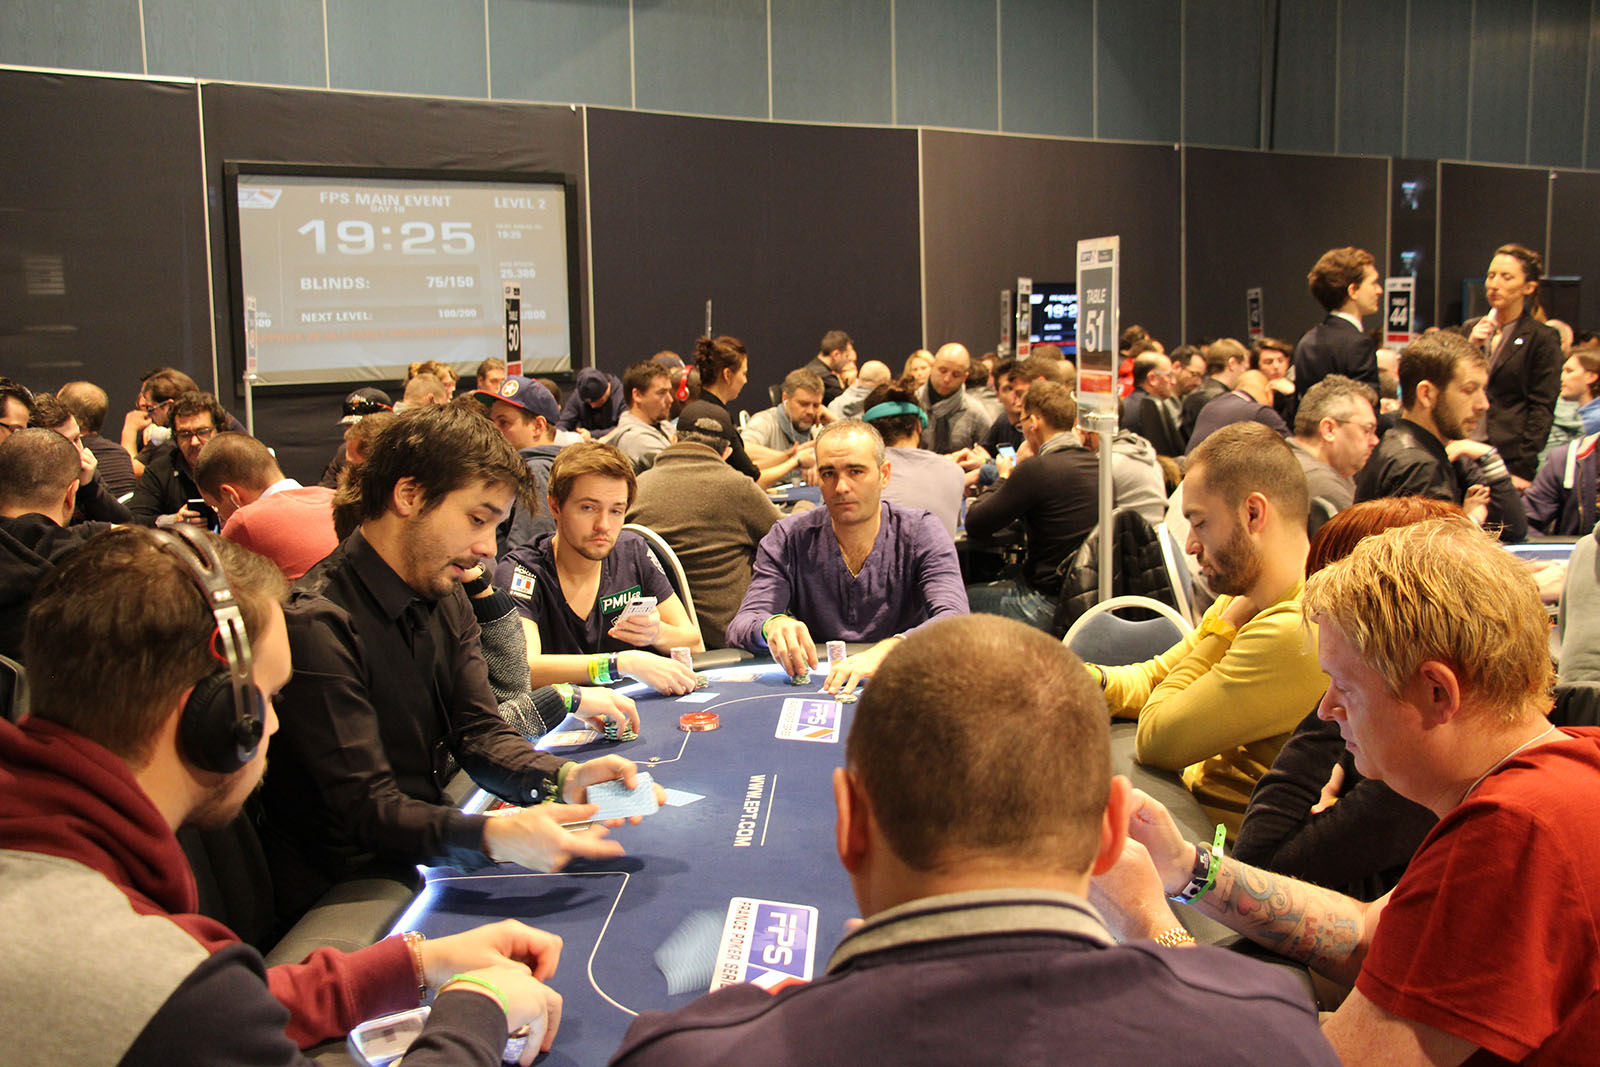 Fps poker blog